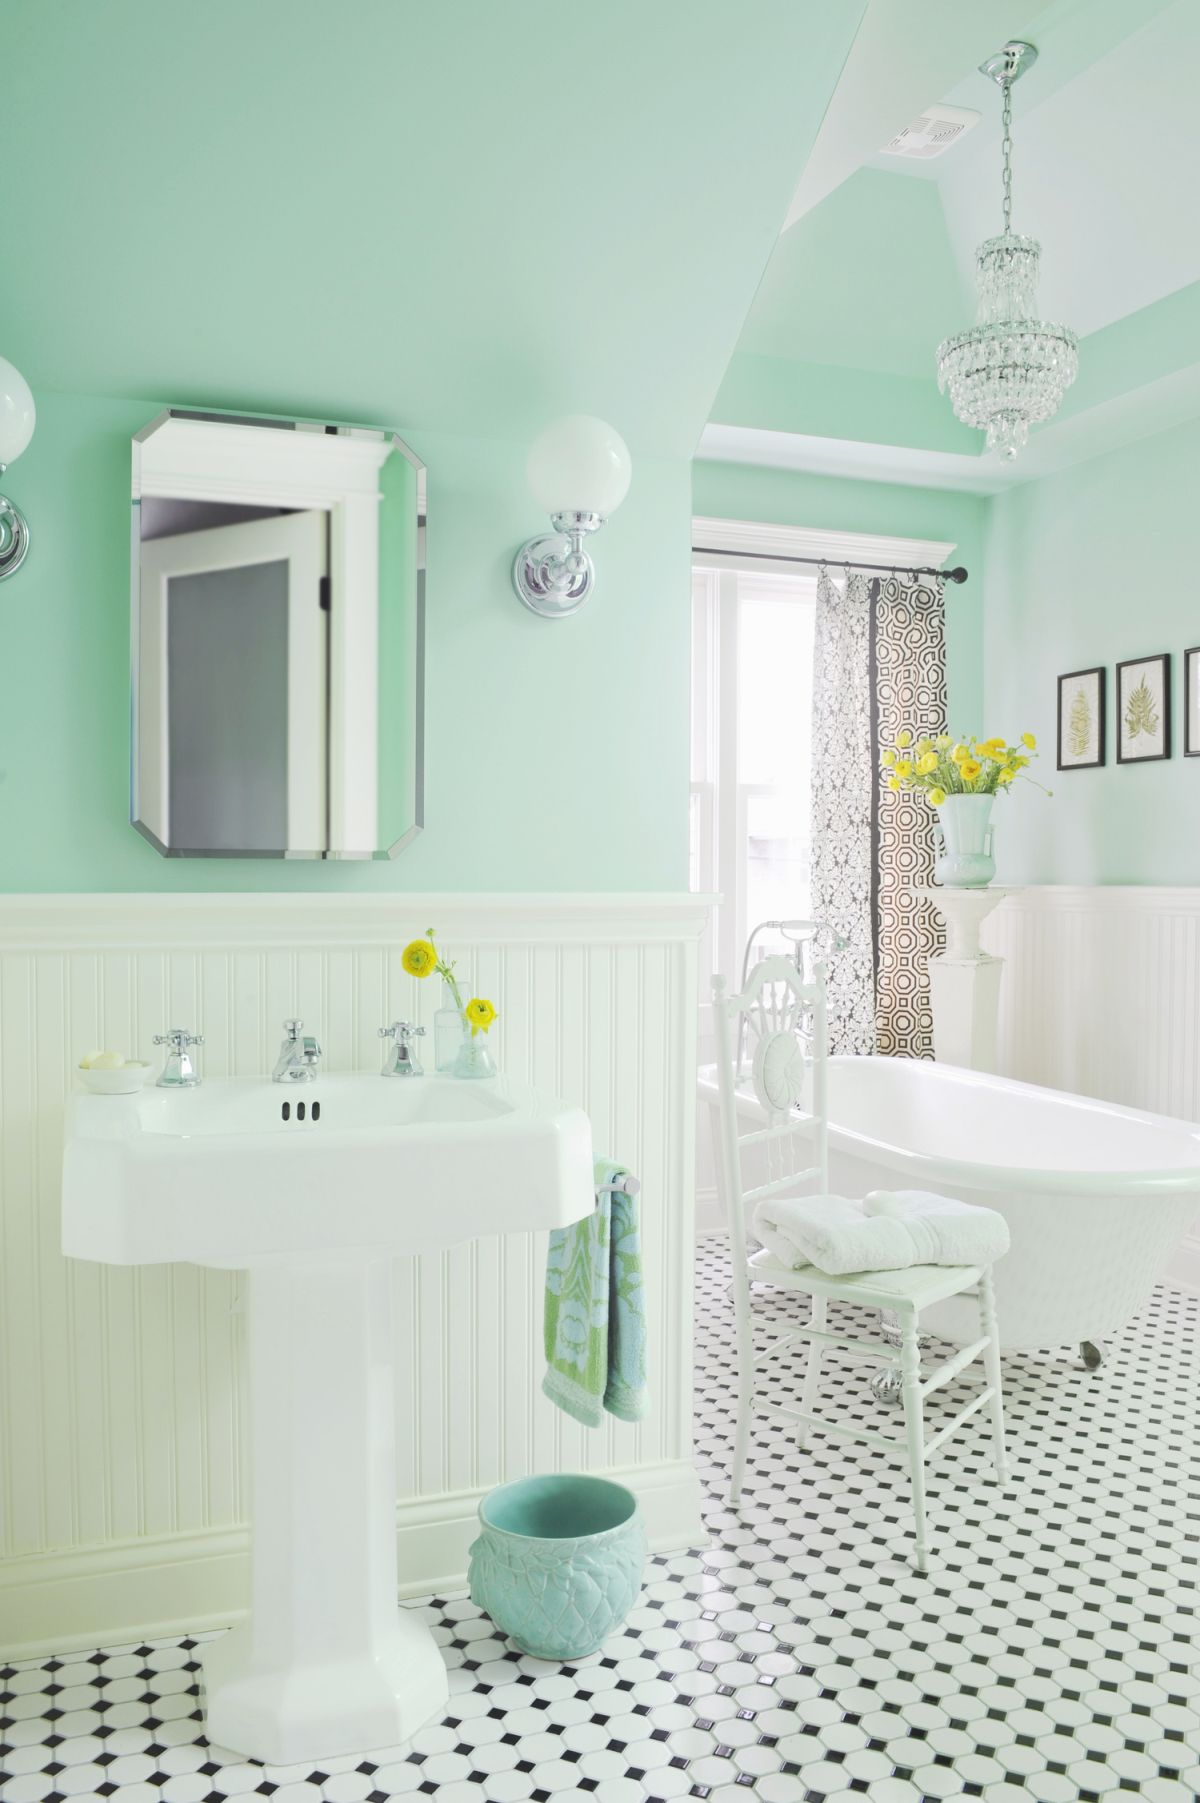 Mint bathroom interior design with black and white floor tiles previous next